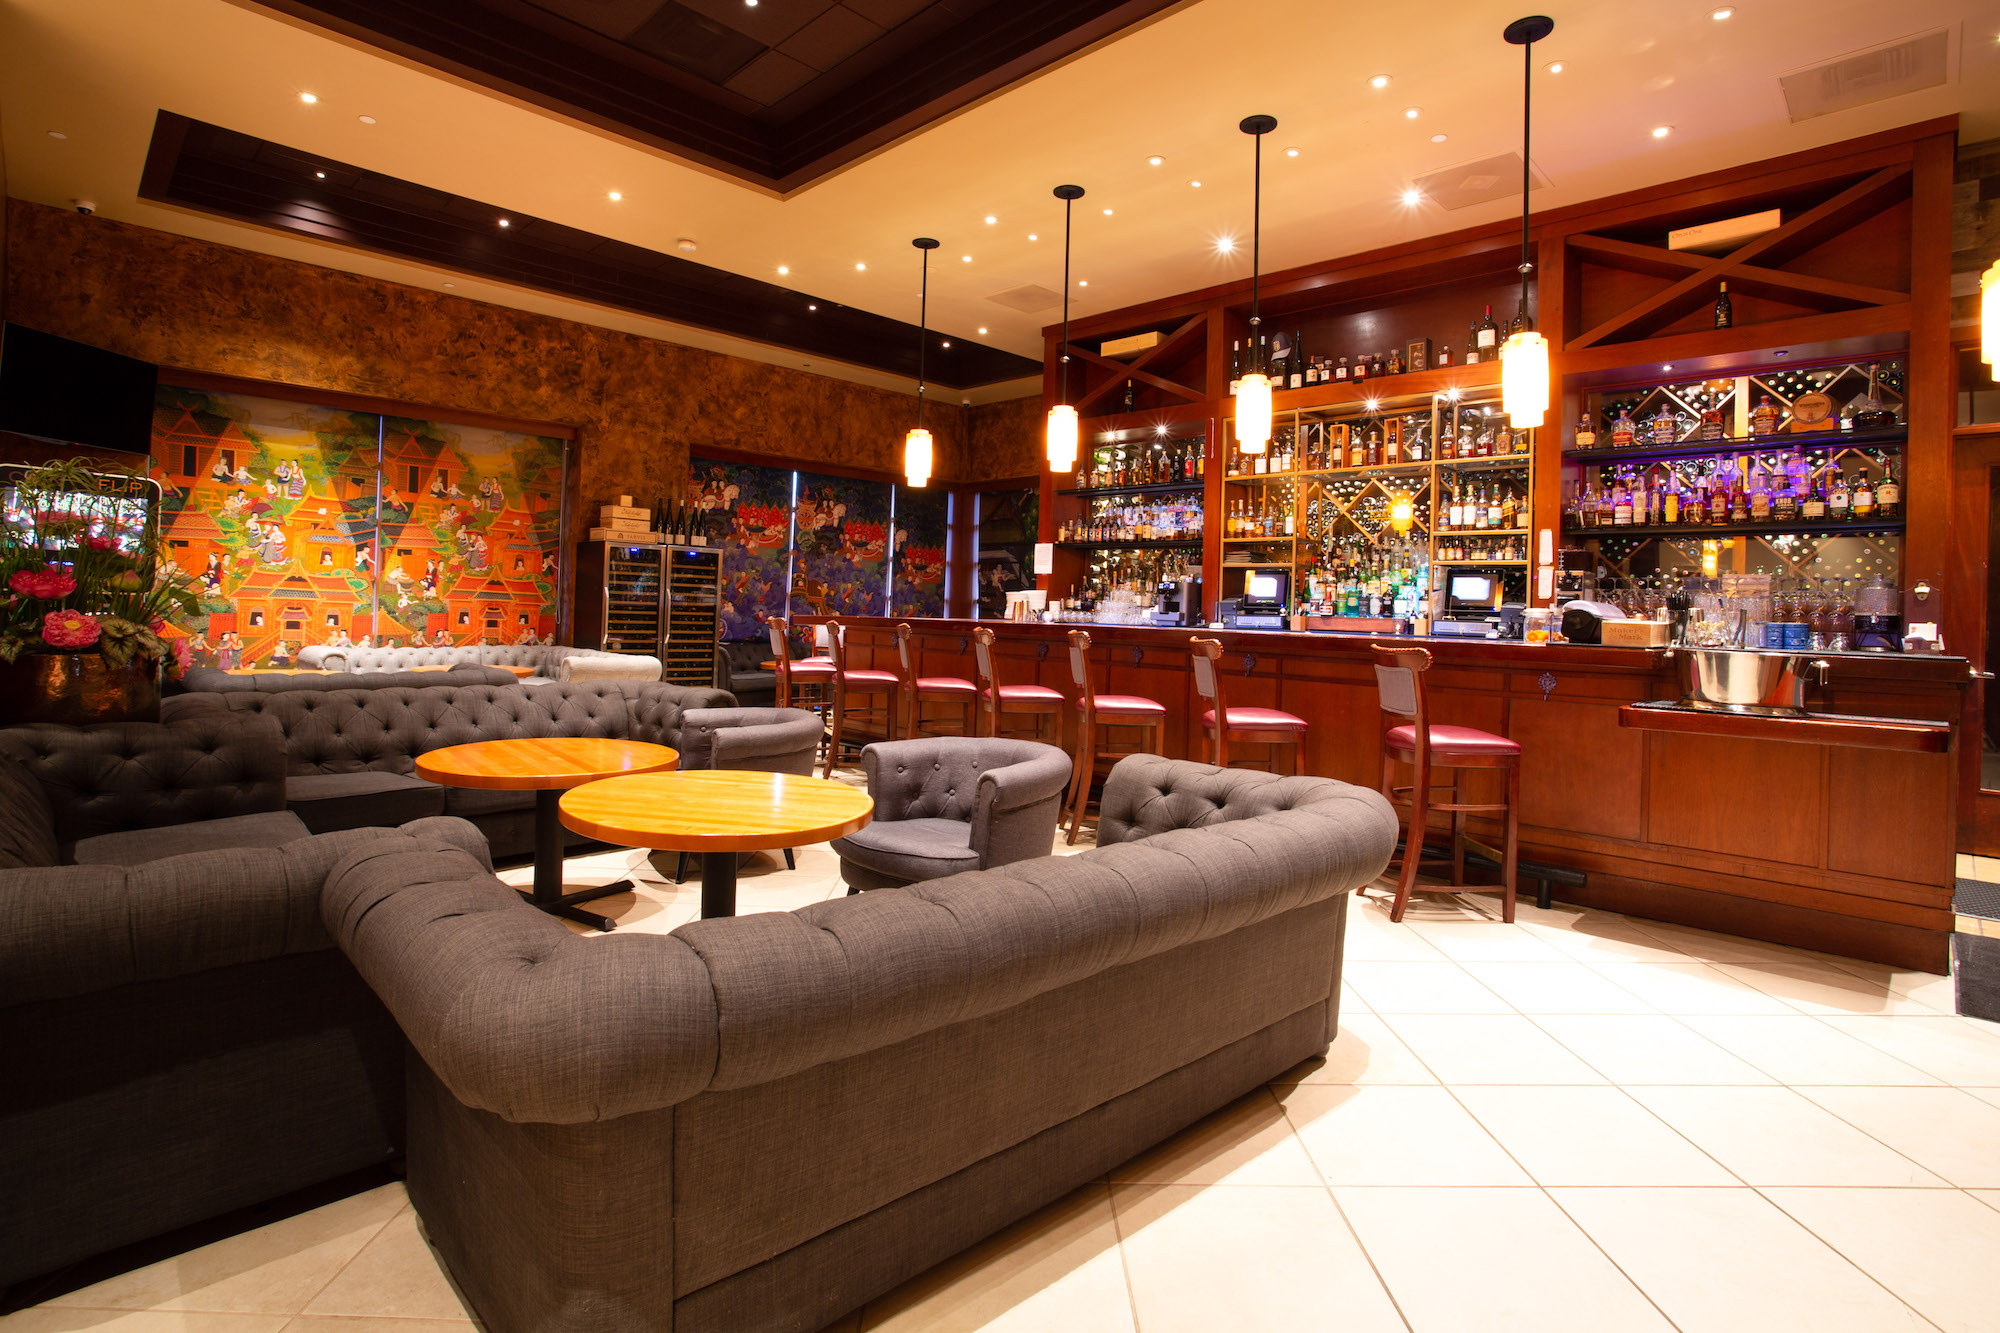 The bar at Lotus of Siam on Flamingo Road